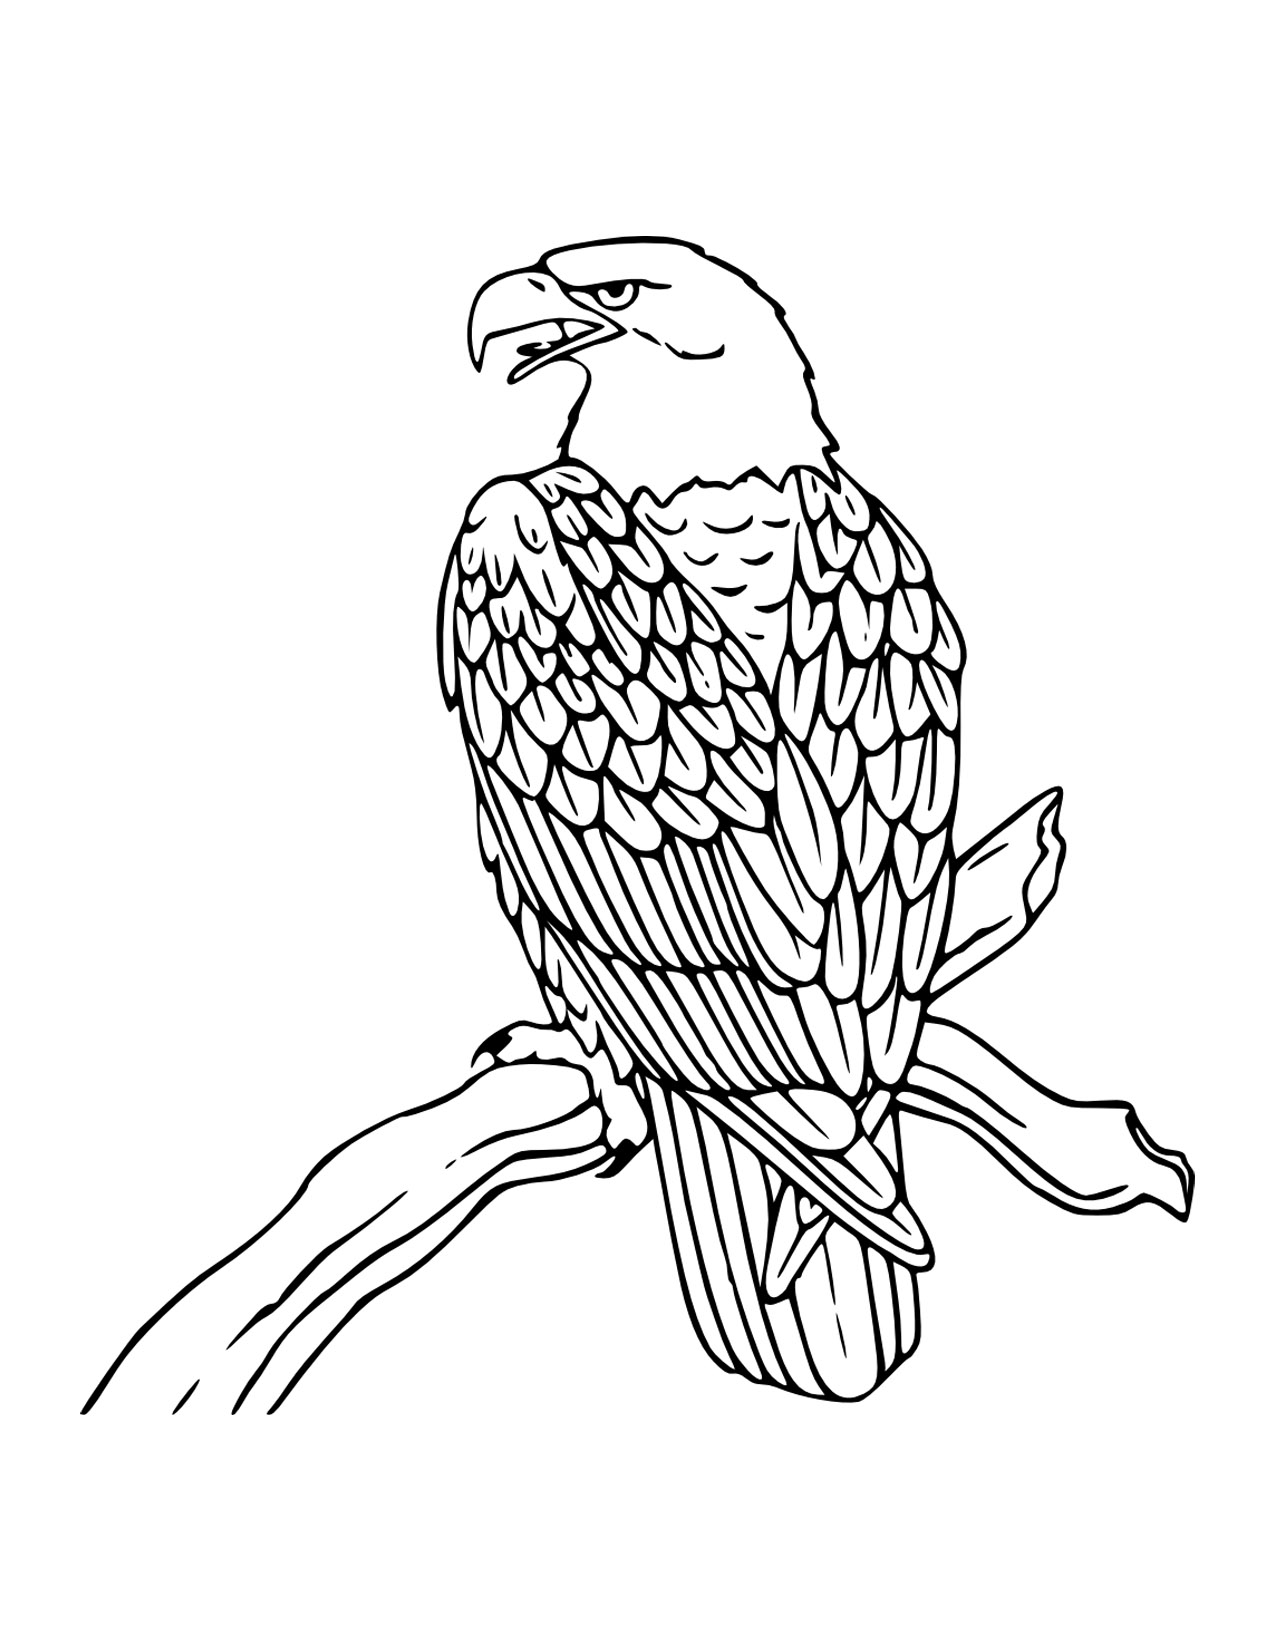 eagle coloring pages for kids - photo #10